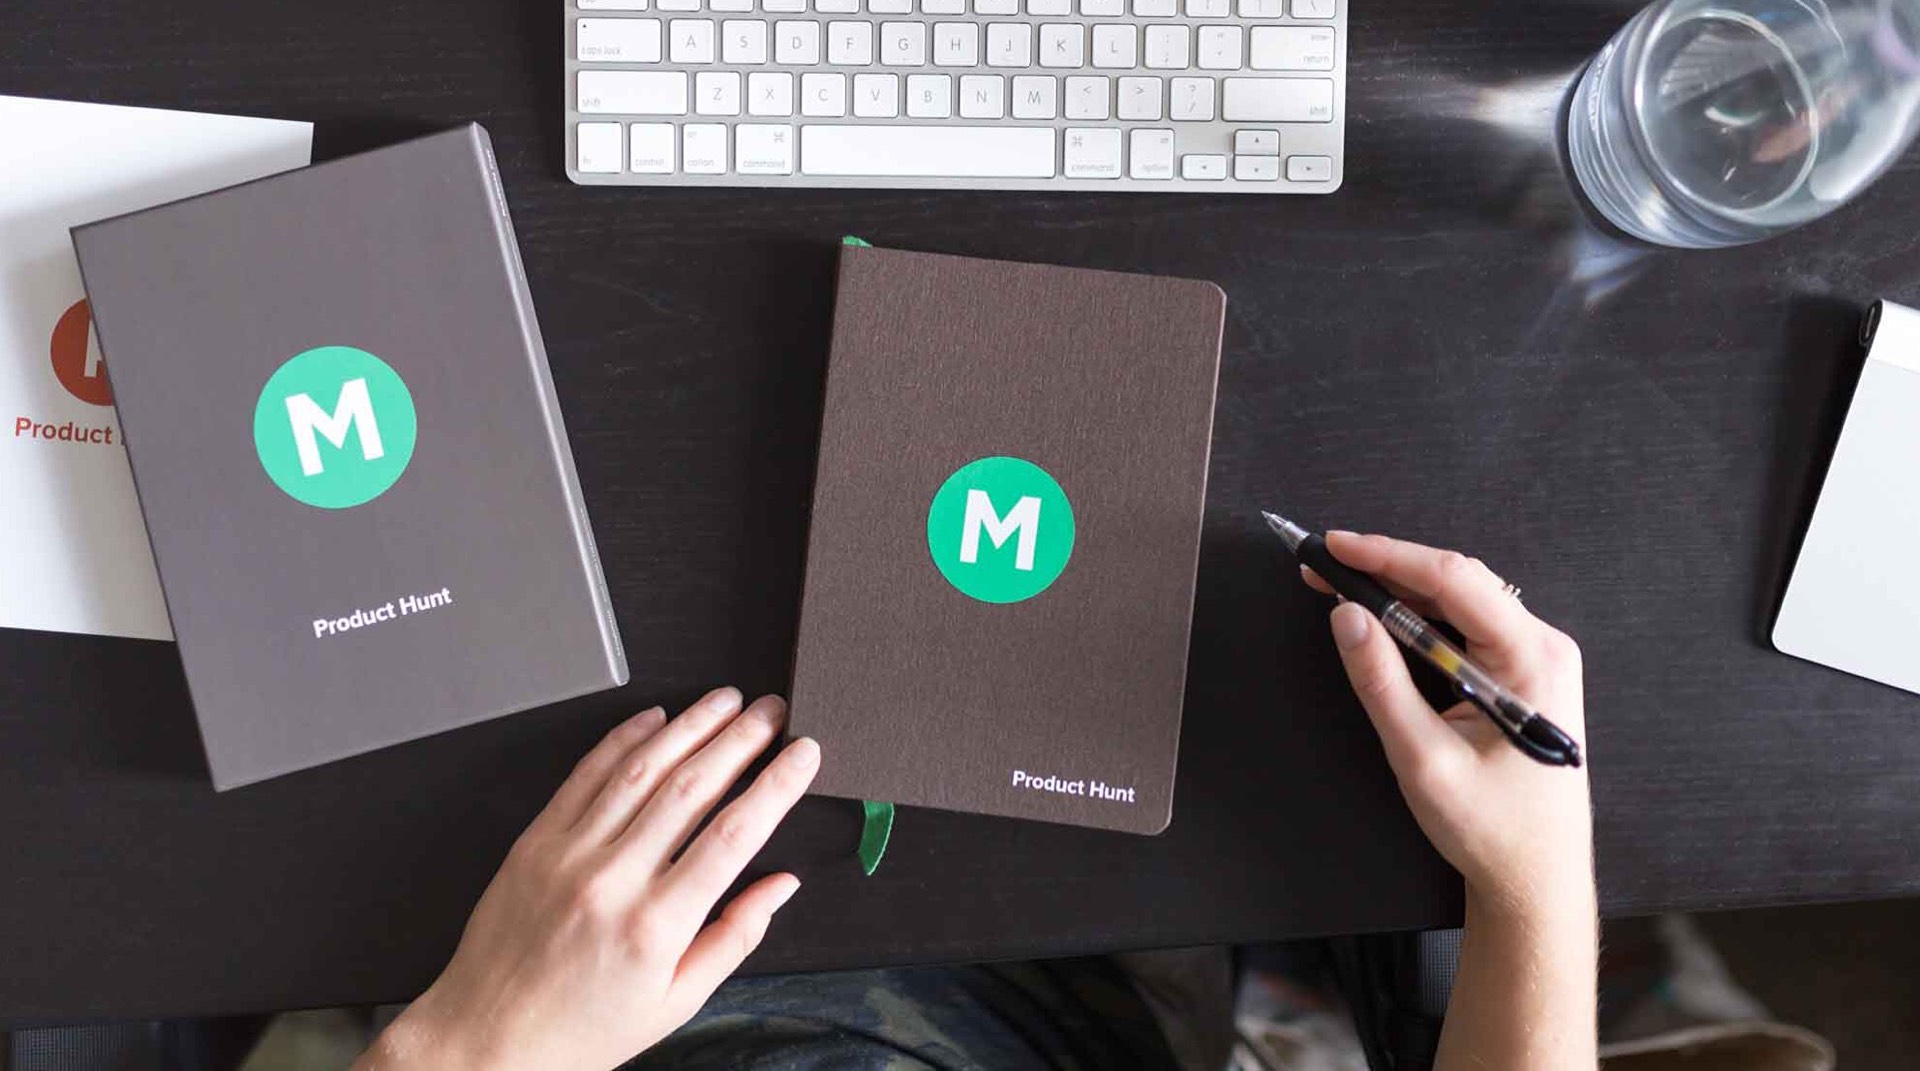 the-baron-fig-product-hunt-confidant-notebook